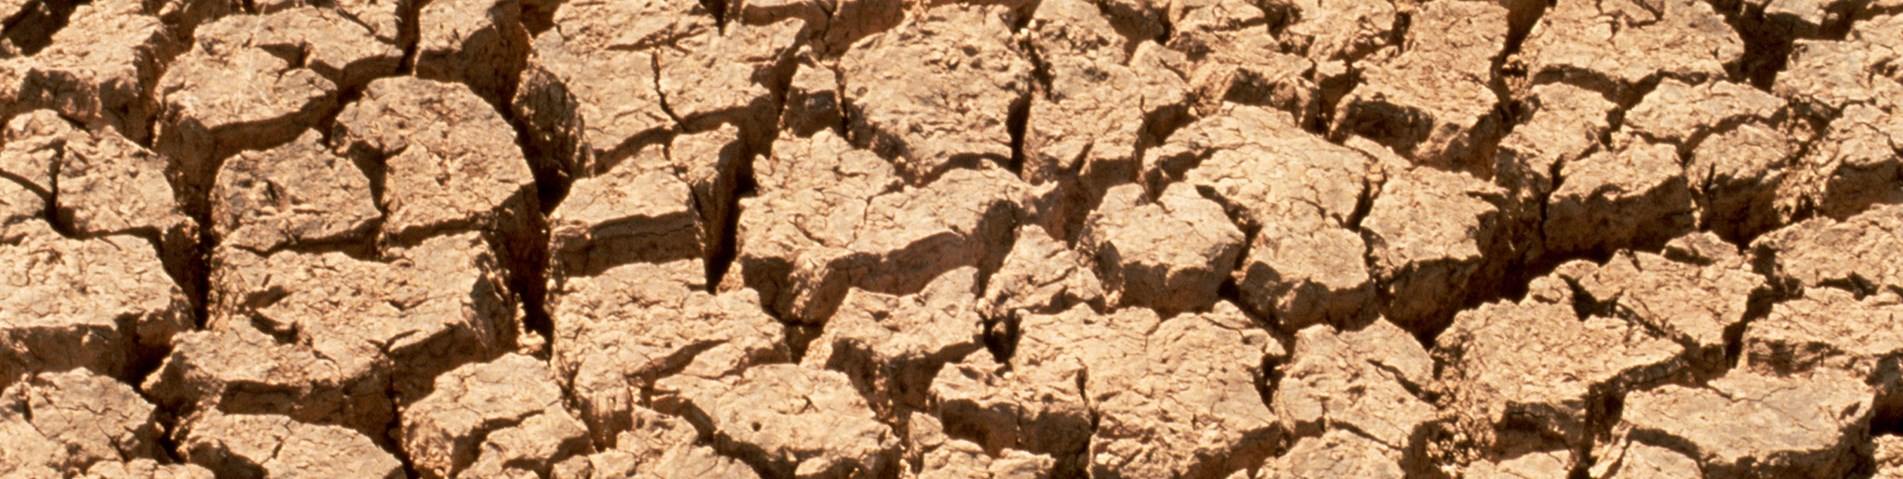 CSIRO_ScienceImage_607_Effects_of_Drought_on_the_Soil.jpg